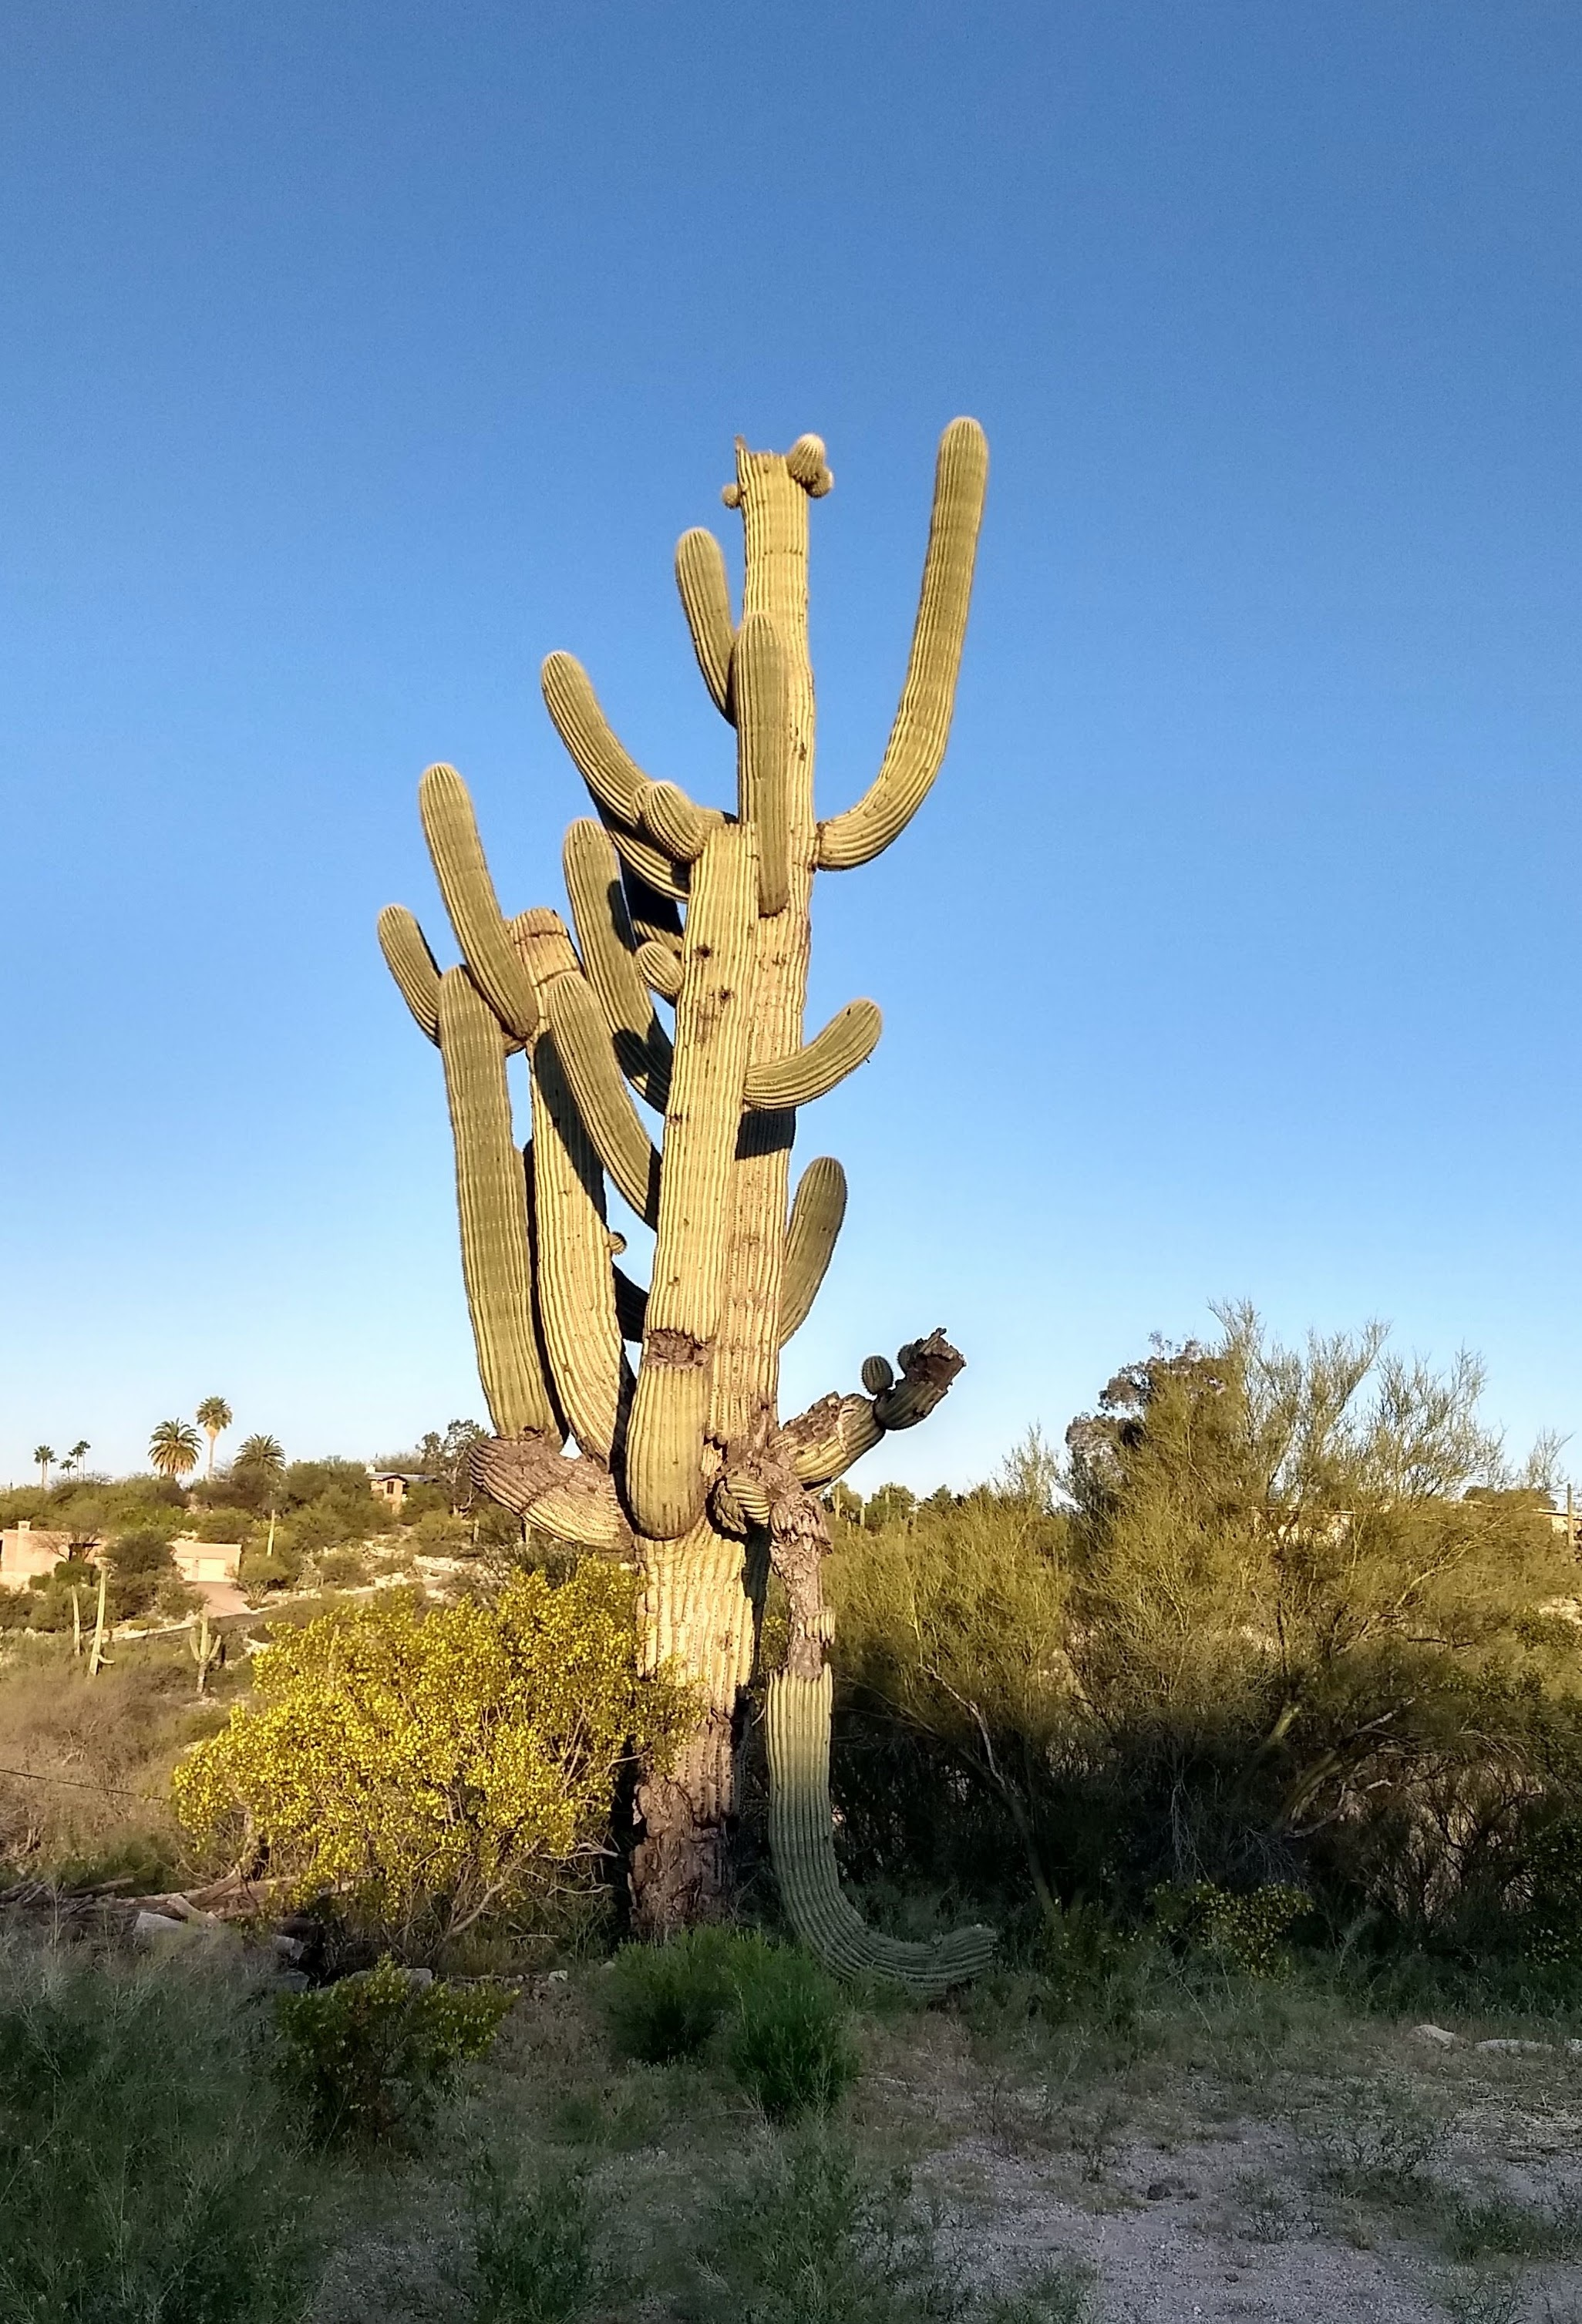 As I walked this morning, I was stunned by the complex dignity of one ENORMOUS Saguaro Cactus! This slow-growing wonder has clearly suffered hardship and drought over many, many decades, and yet, it thrives, continually rising toward the sun.